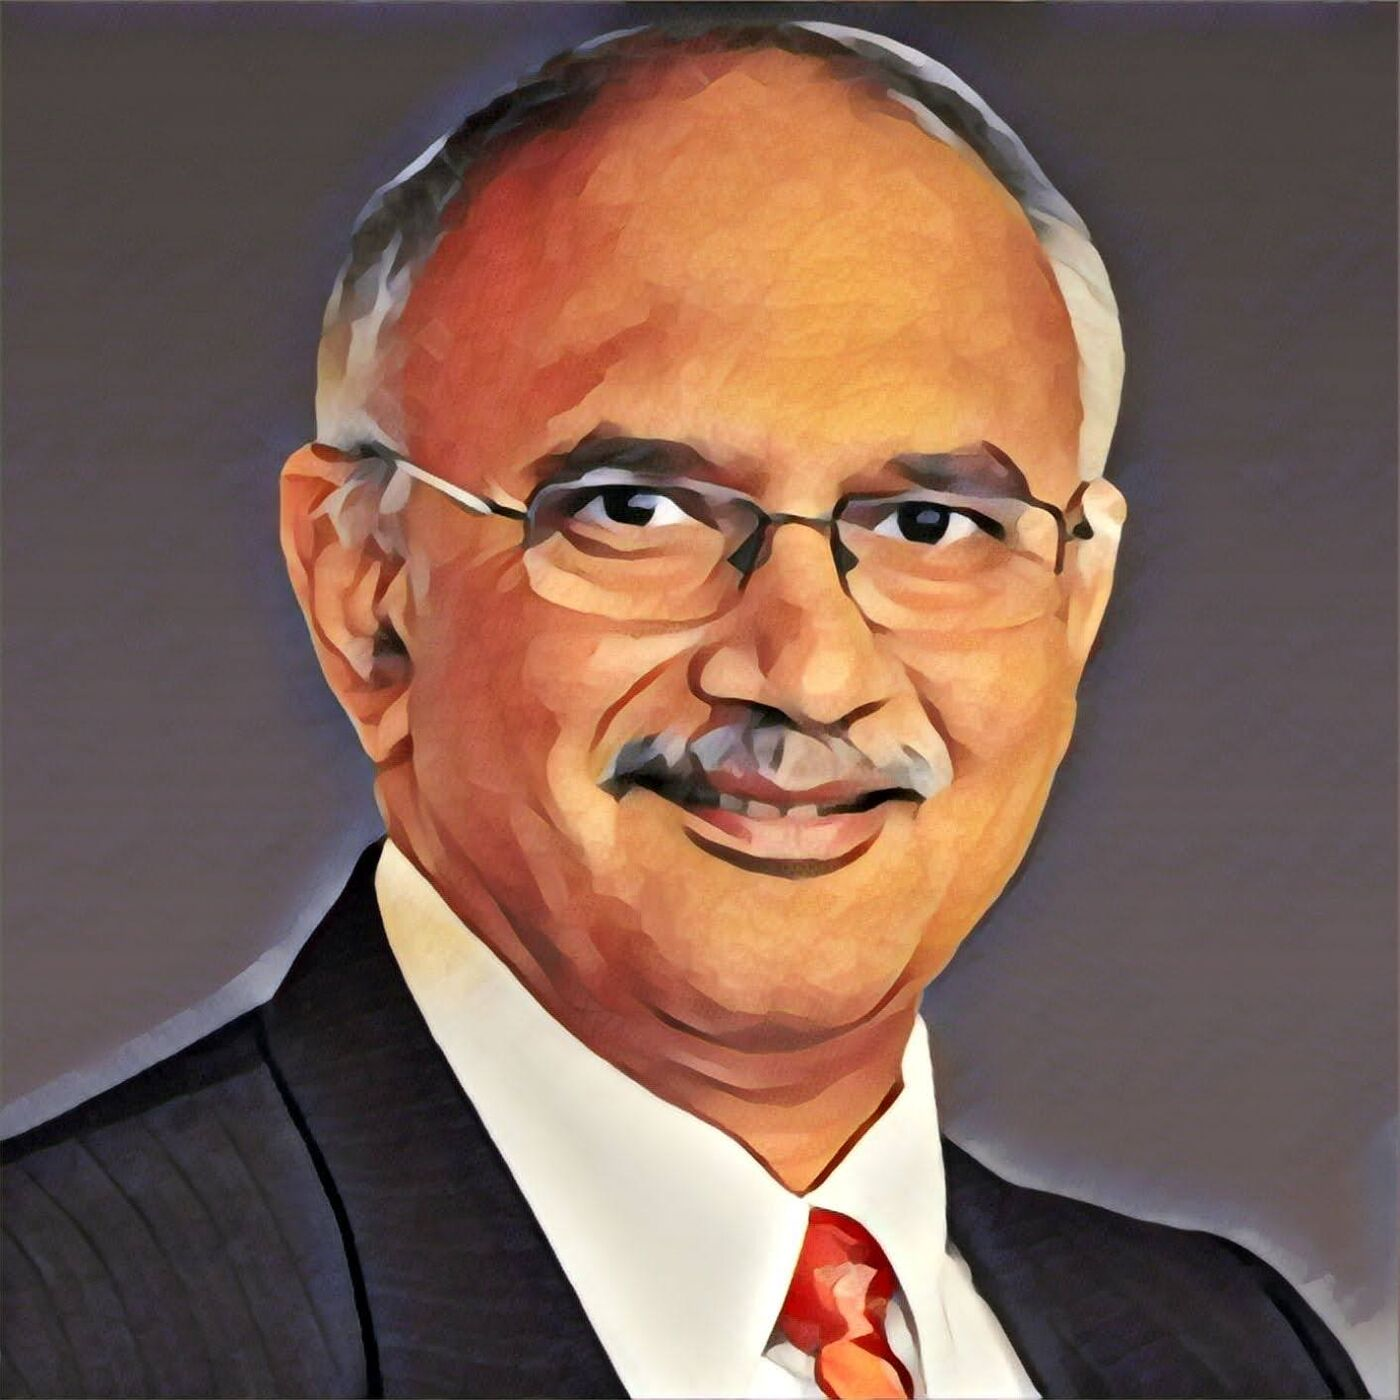 Launching into the 2nd Orbit - Your Career, Company & Being (Dr Anand Deshpande, Founder & Chairman, Persistent Systems)